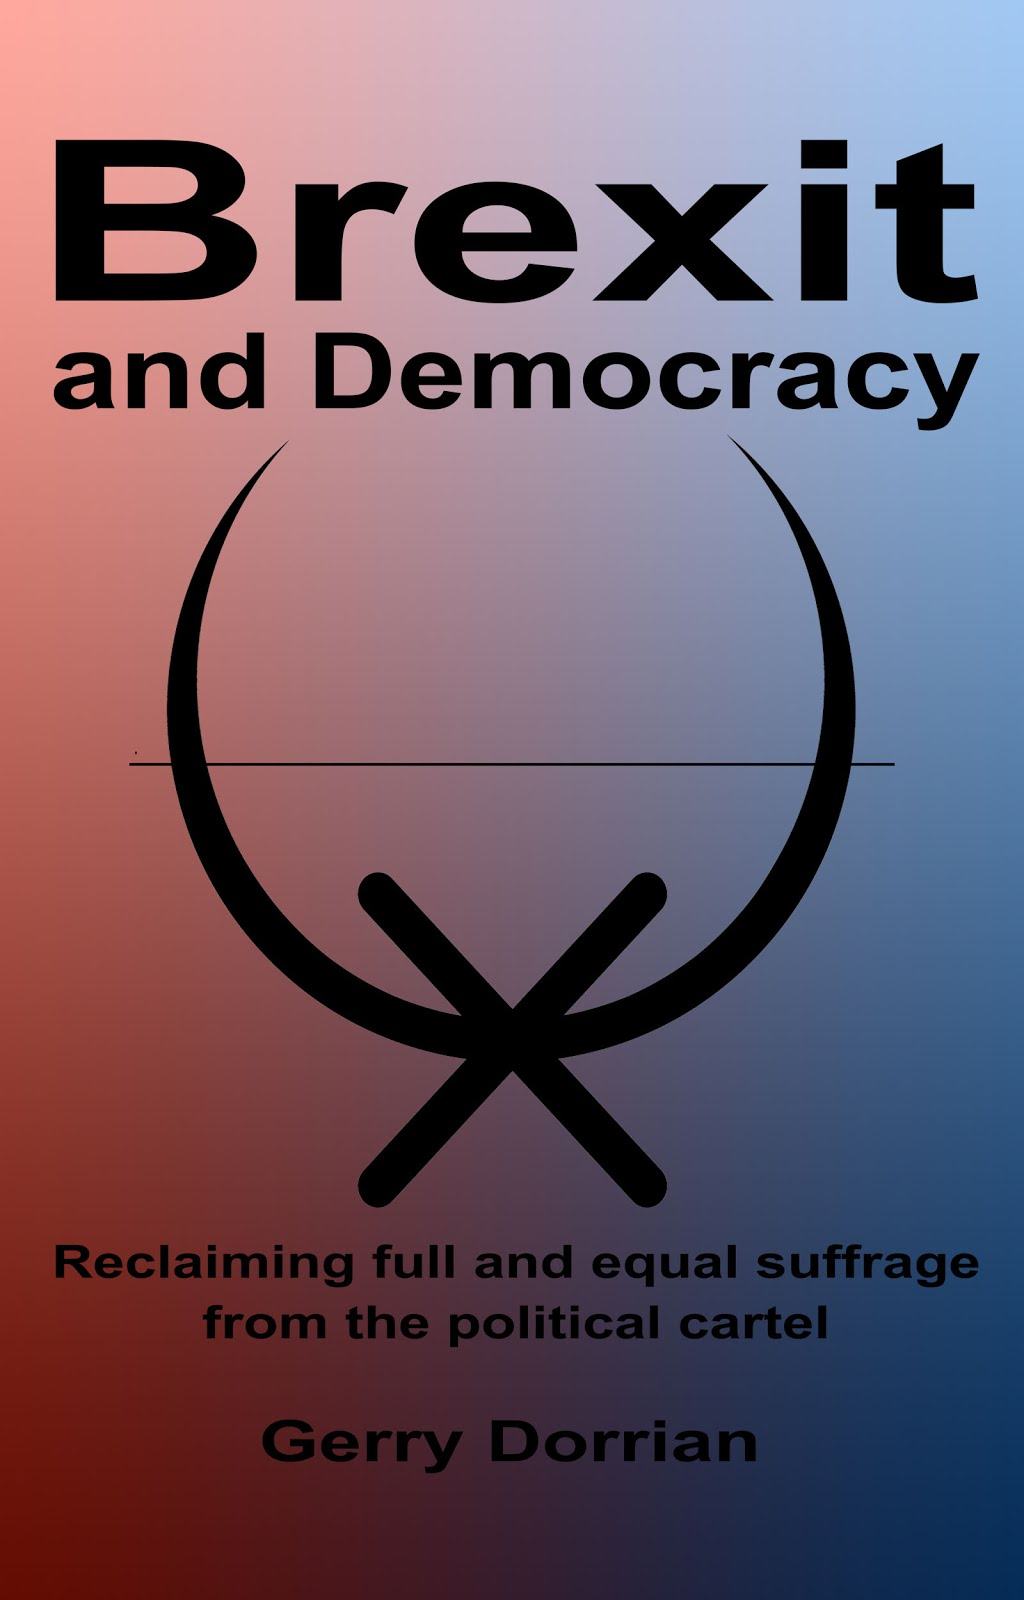 """Brexit and Democracy: Reclaiming full and equal suffrage from the political cartel"""